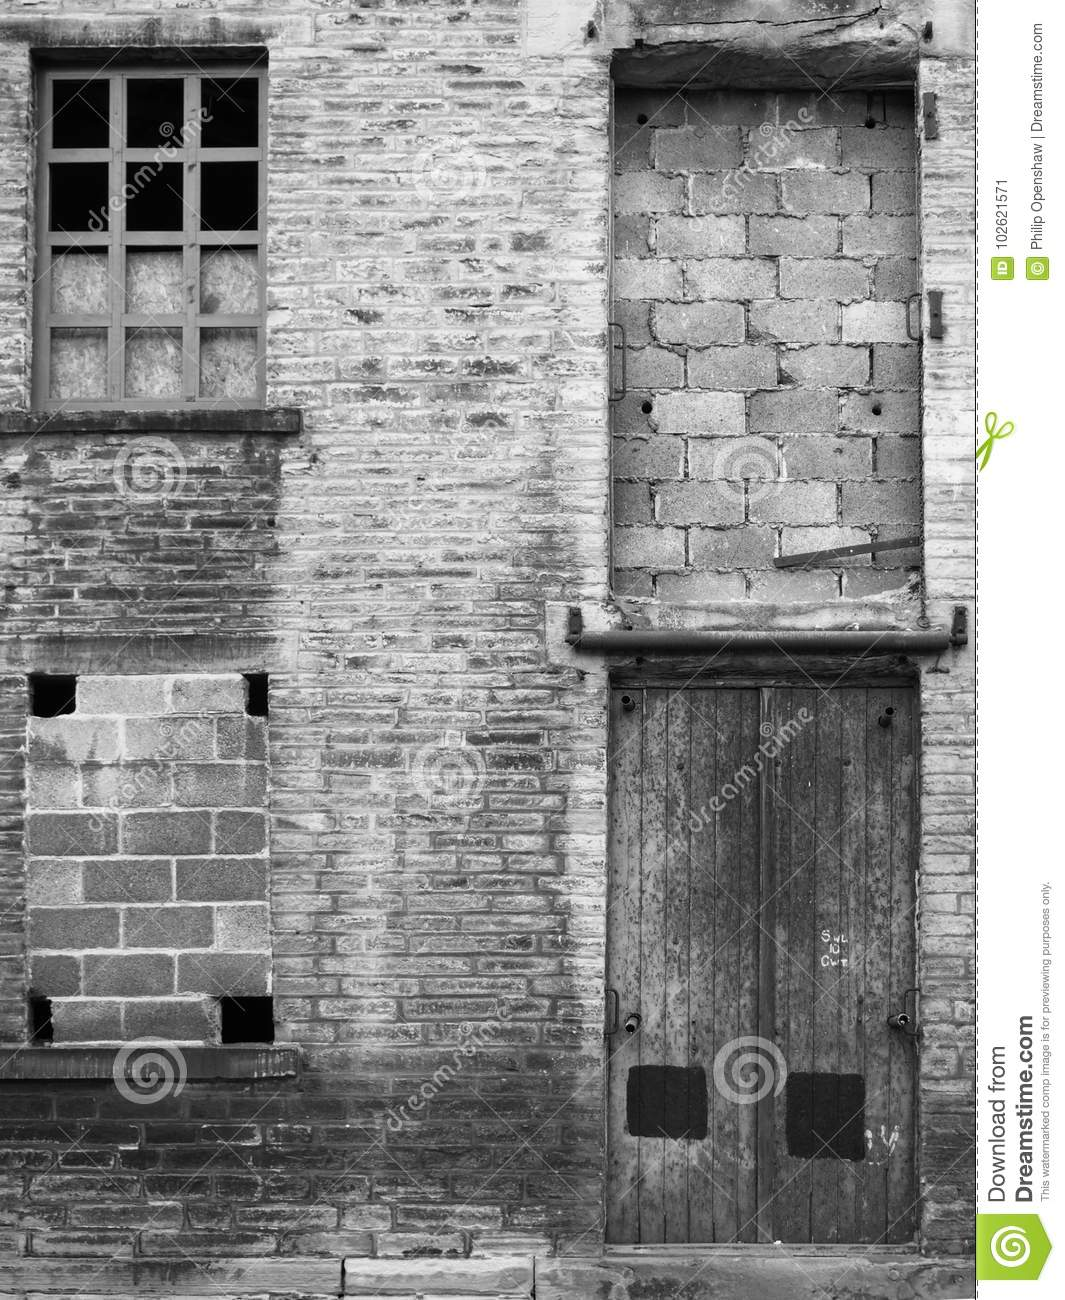 Abandoned Industrial Warehouse Building With Bricked Up